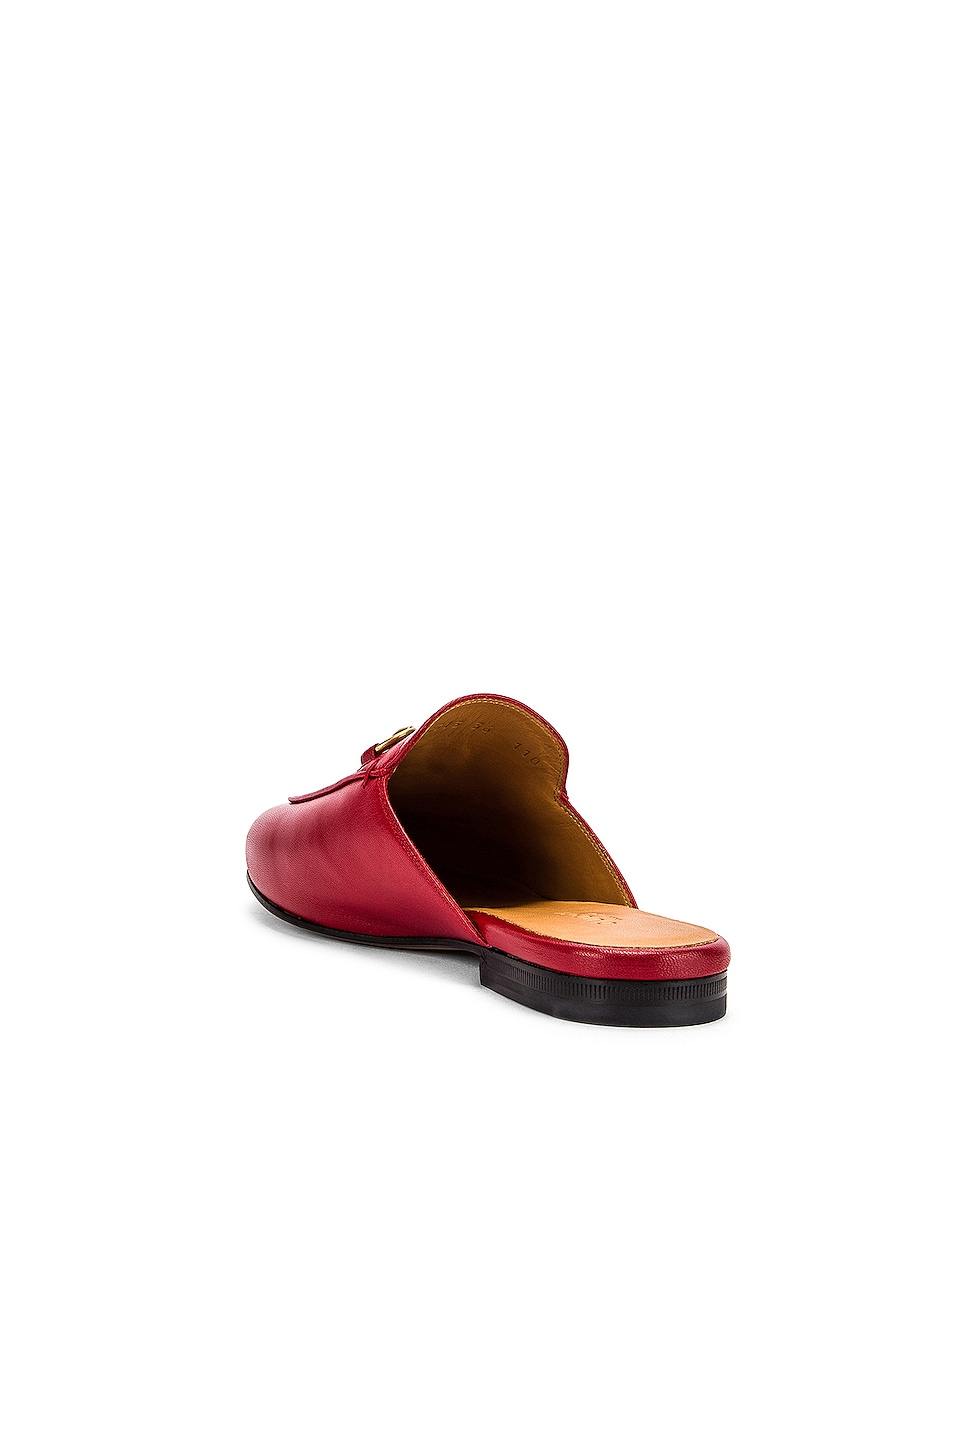 Image 3 of Gucci Princetown Slides in Hibiscus Red